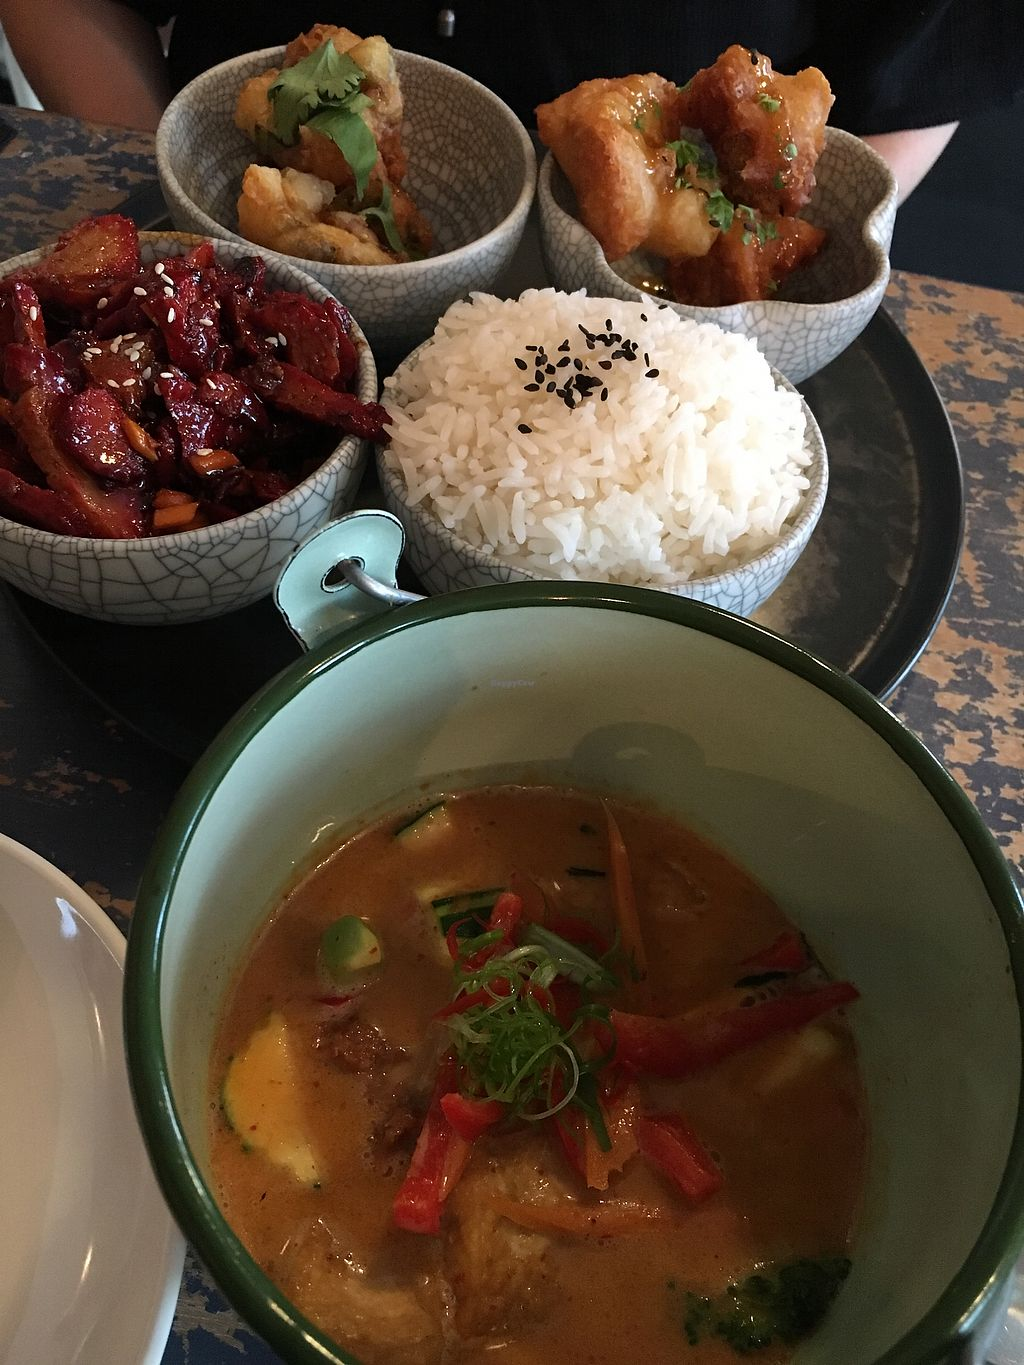 """Photo of Monsoon Thai Fusion  by <a href=""""/members/profile/SeitanSeitanSeitan"""">SeitanSeitanSeitan</a> <br/>Panang curry in front & bbq bento <br/> December 1, 2017  - <a href='/contact/abuse/image/96671/331007'>Report</a>"""